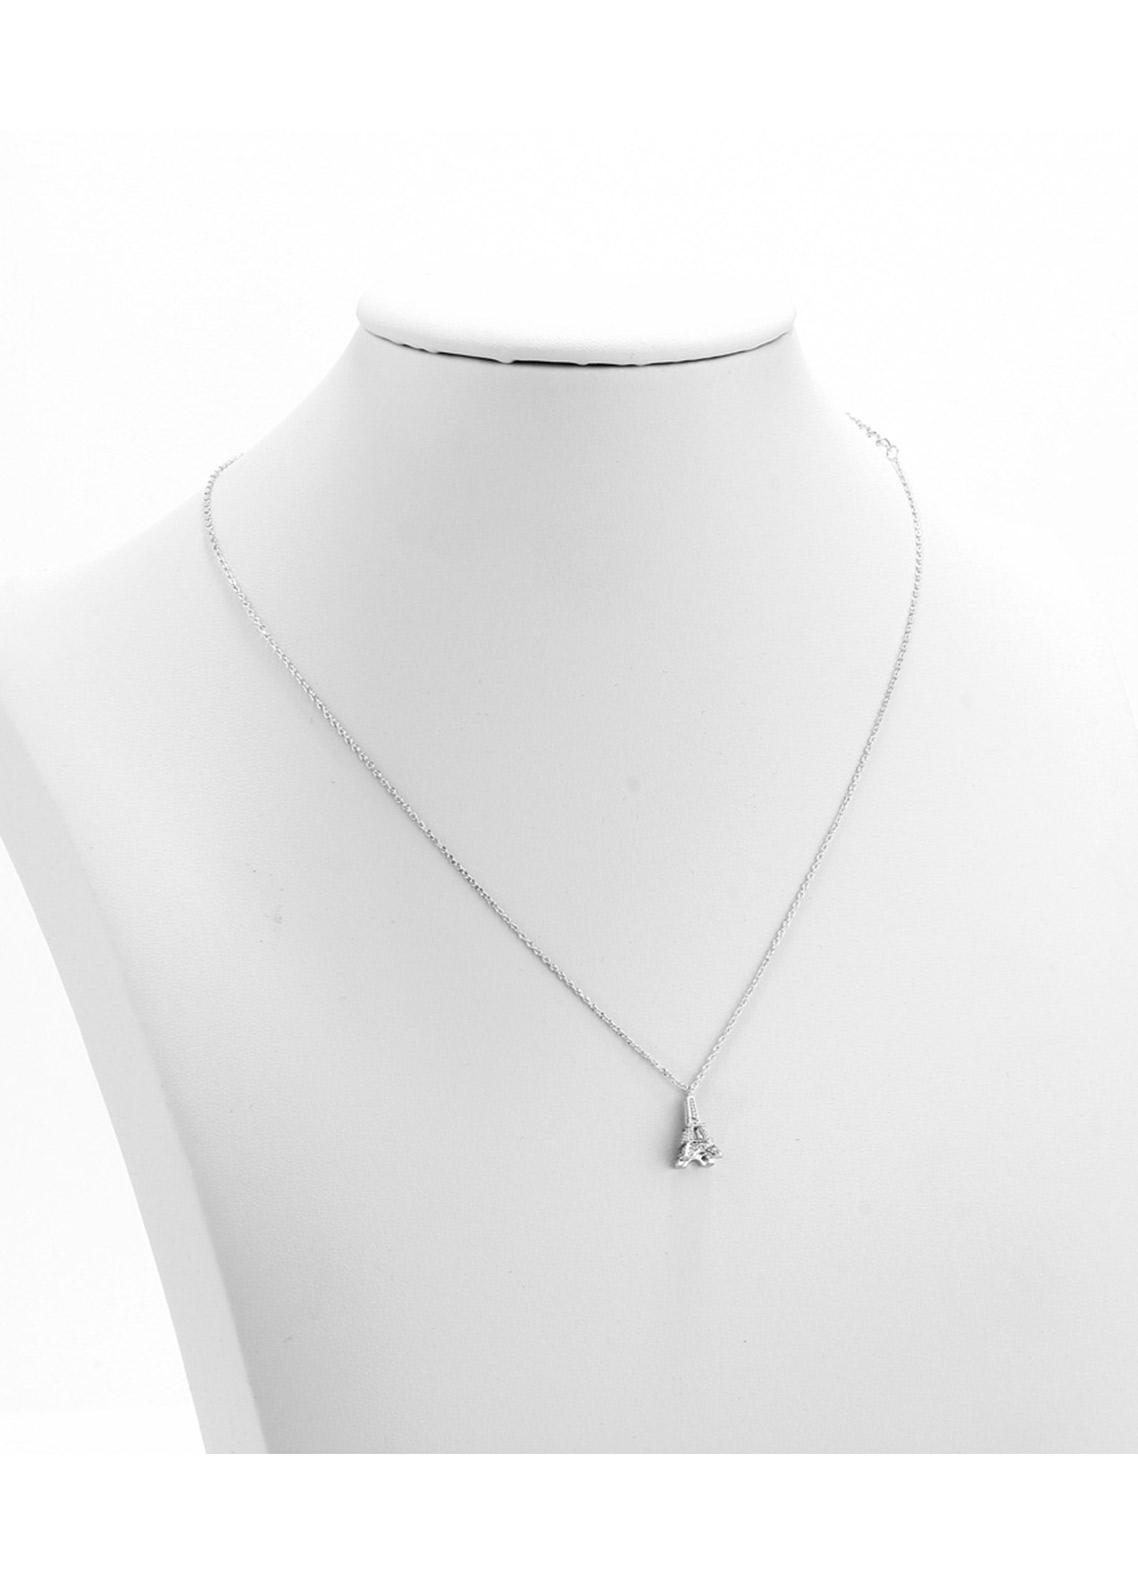 Anna Grace London by Silk Avenue Silver Plated Crystal Eiffel Tower Necklace AGN0053 - Ladies Jewellery